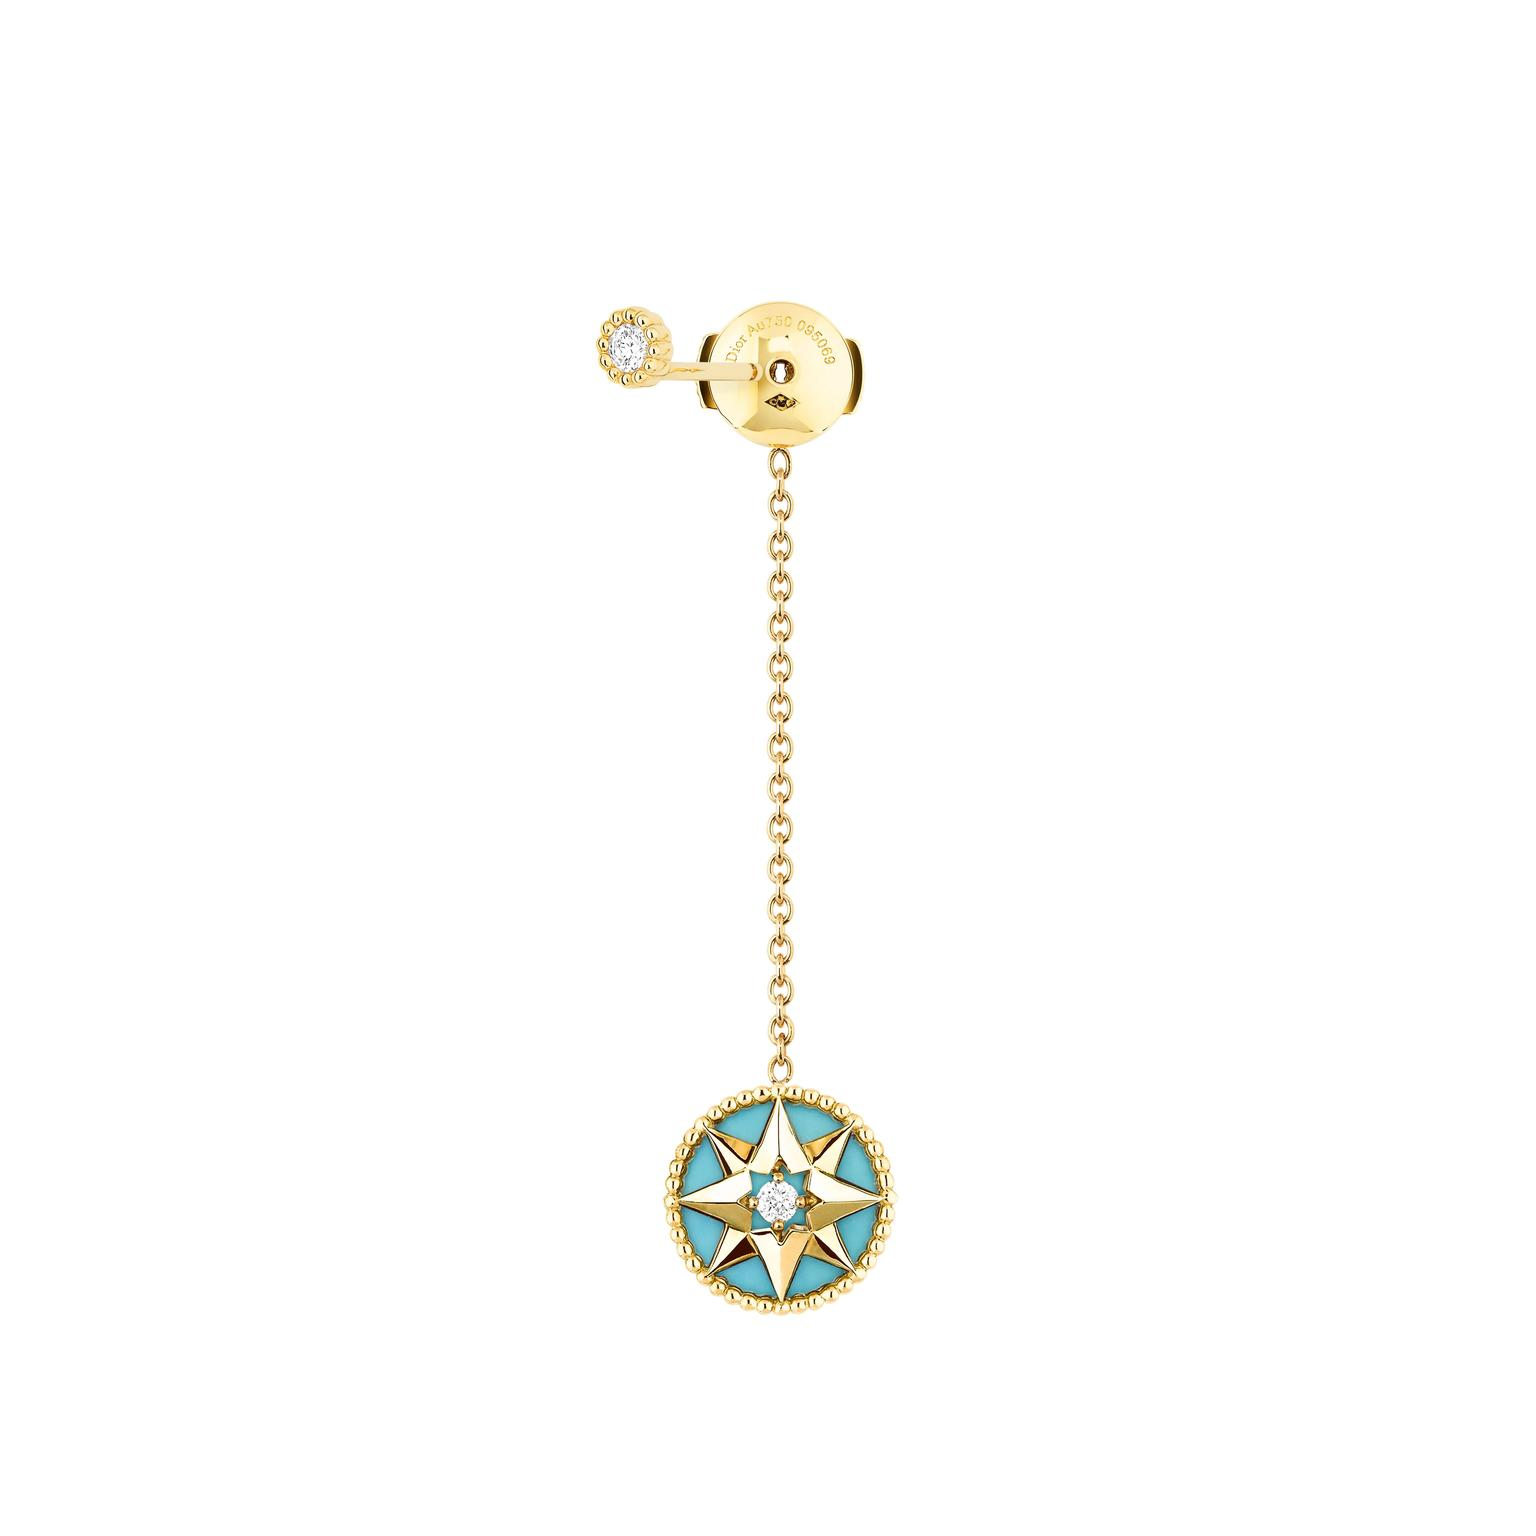 Turquoise Rose Des Vents Earring Dior The Jewellery Editor